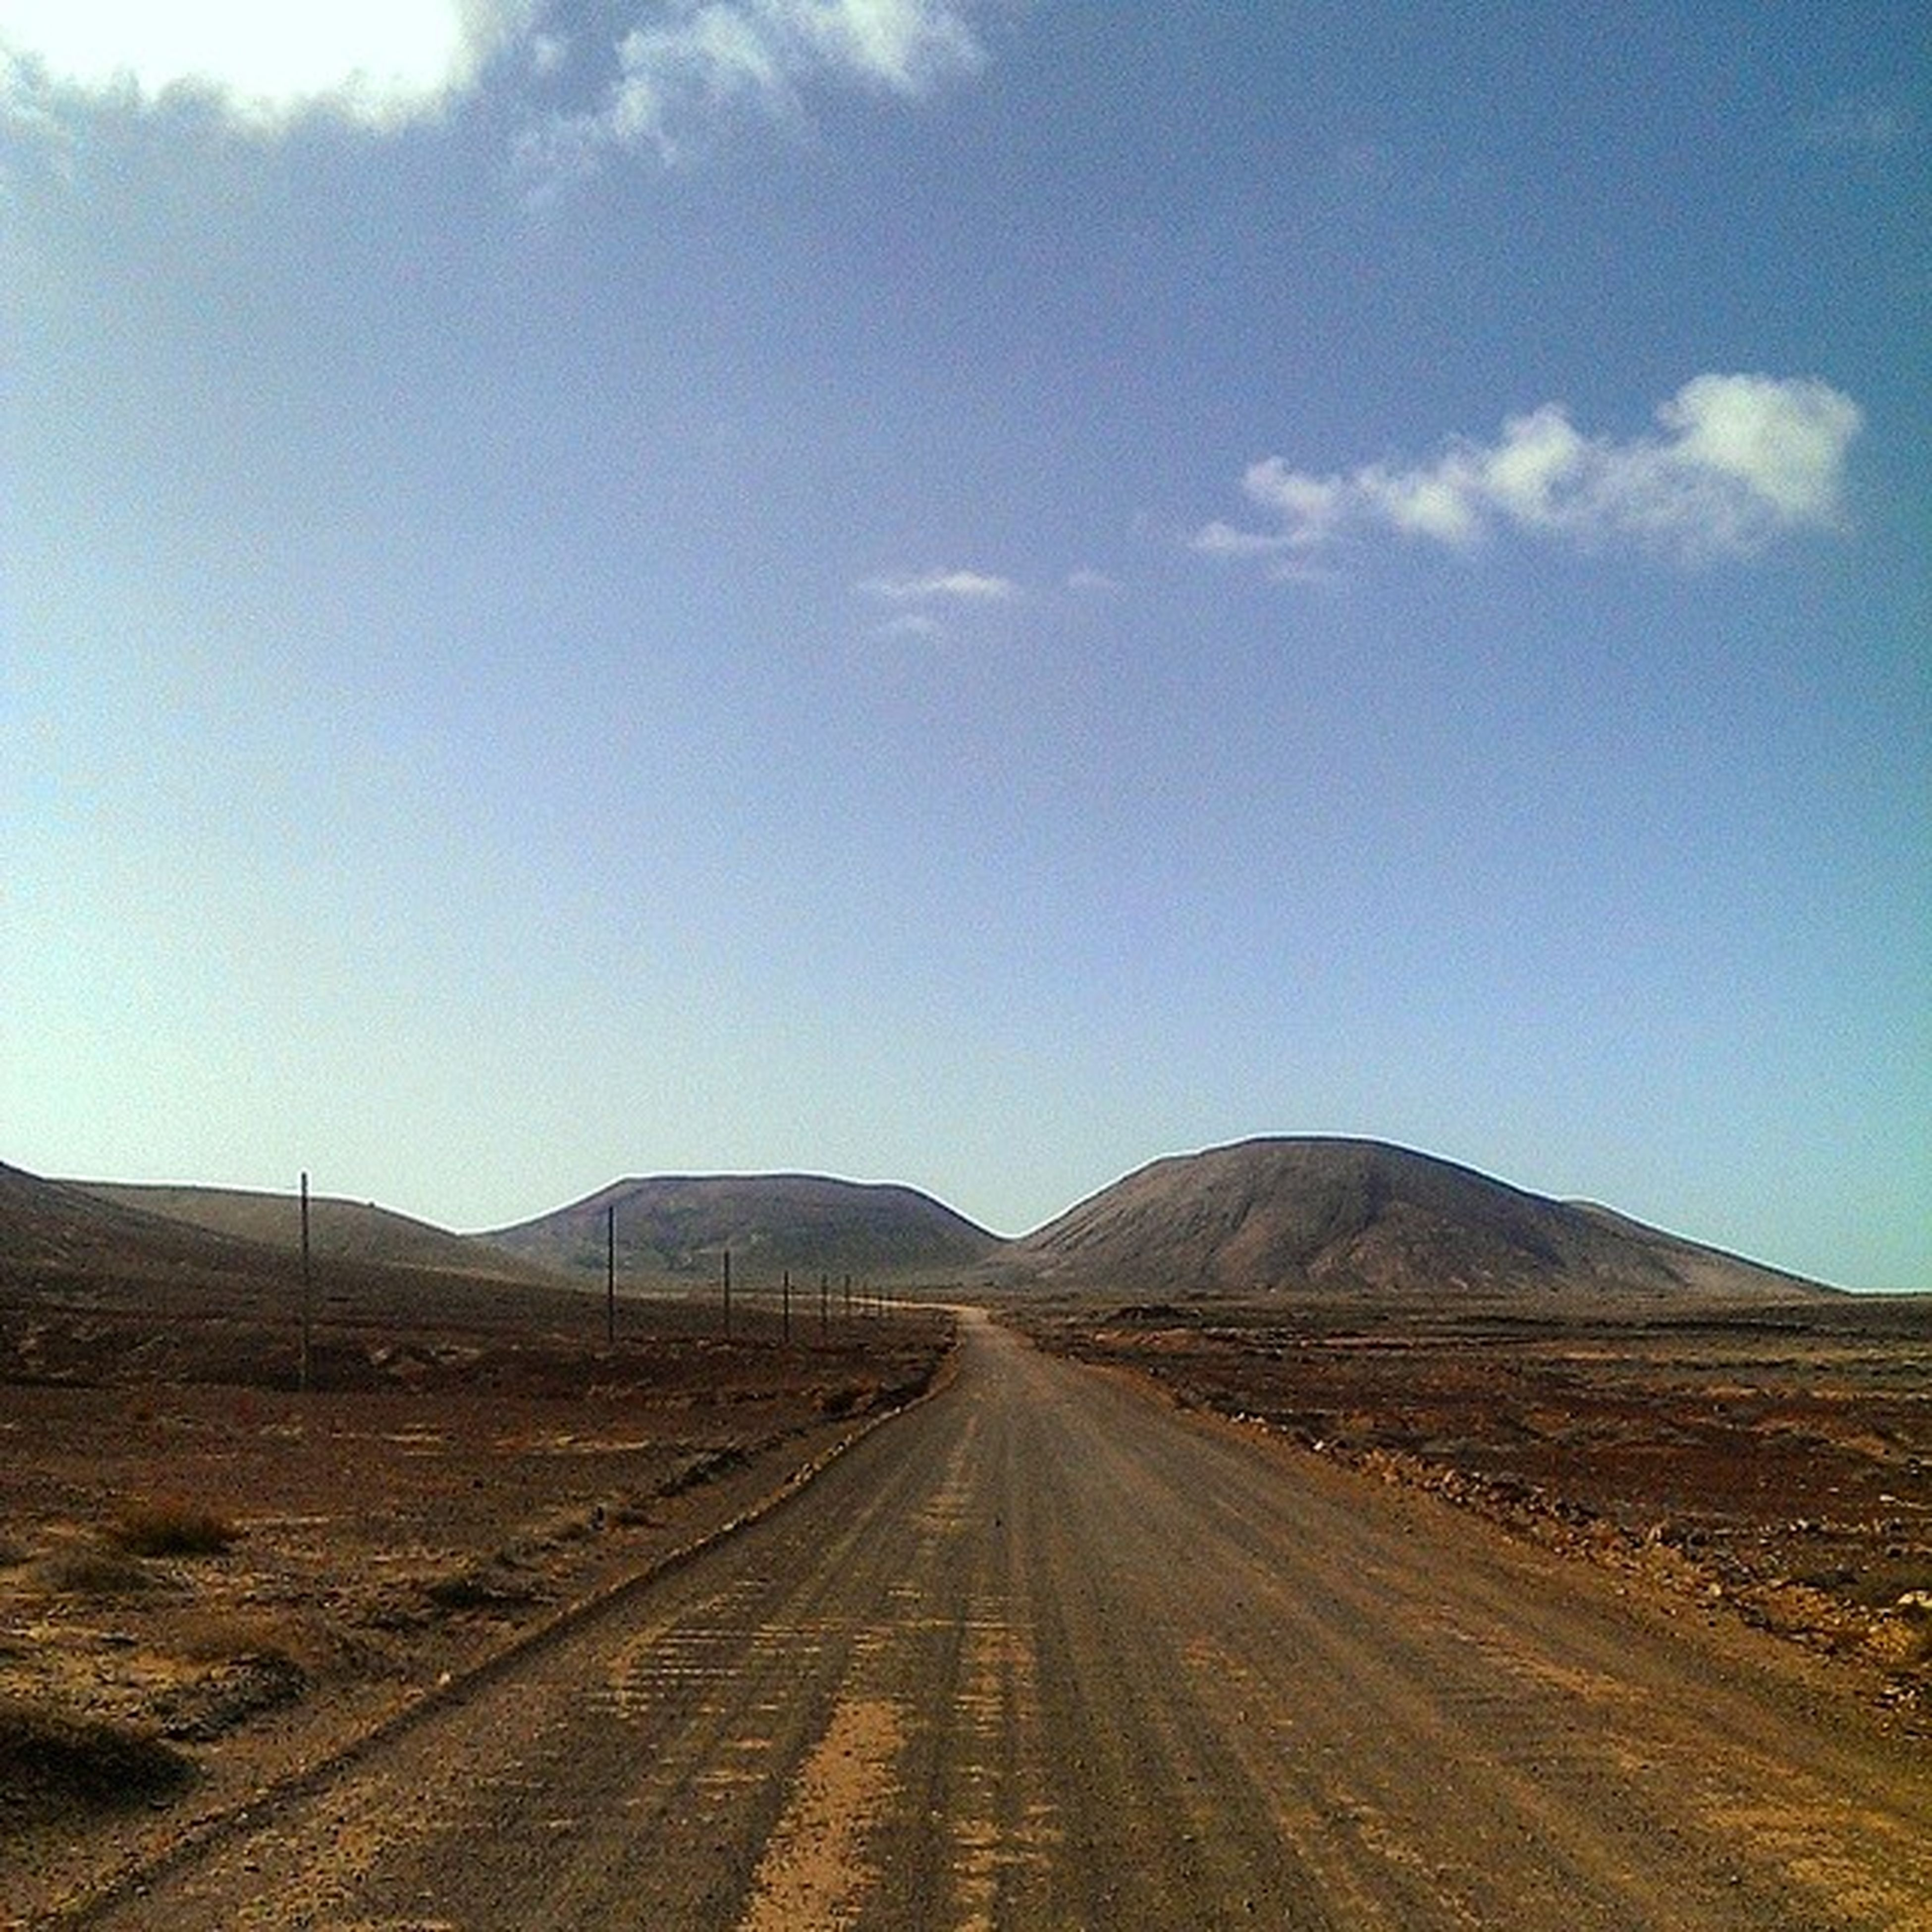 the way forward, diminishing perspective, road, vanishing point, landscape, transportation, sky, tranquil scene, mountain, tranquility, blue, country road, desert, dirt road, nature, scenics, non-urban scene, mountain range, empty, remote